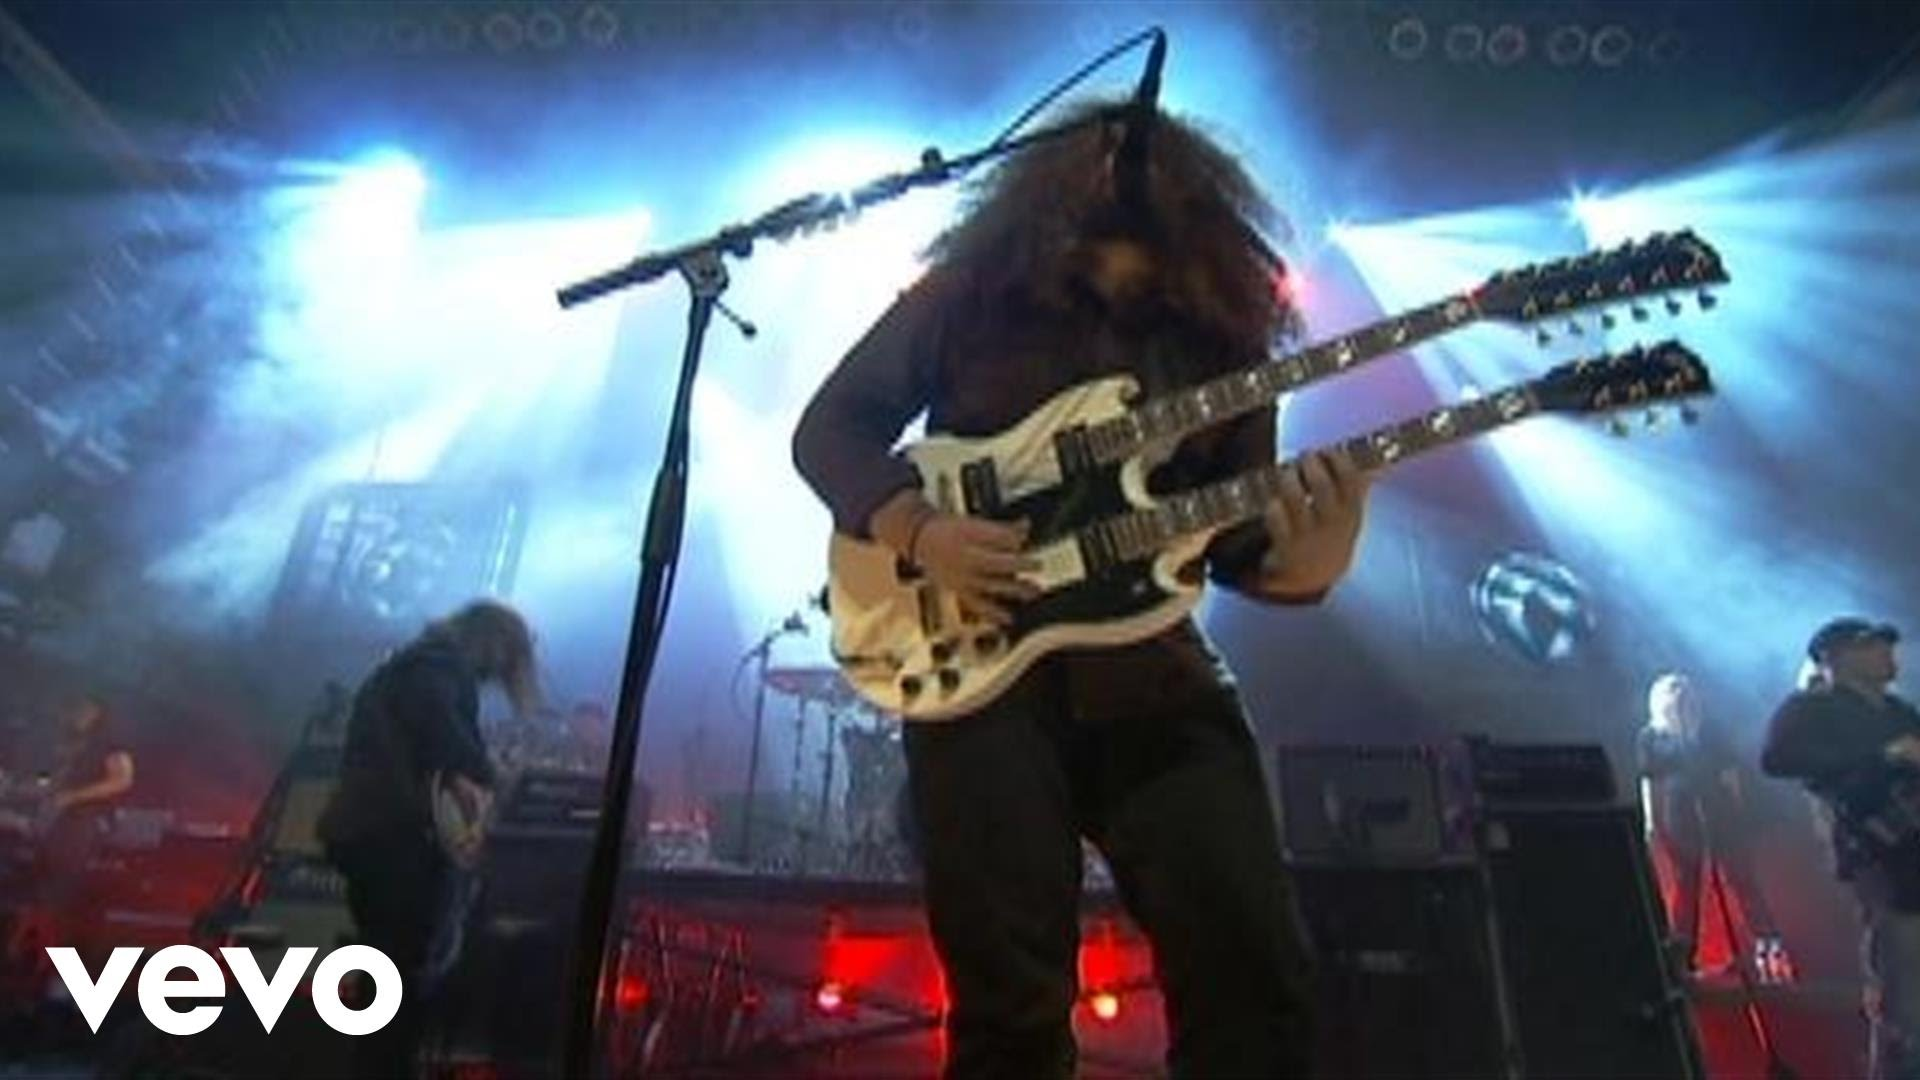 Coheed And Cambria Tour Dates 2020 Coheed and Cambria and Taking Back Sunday announce 2018 co